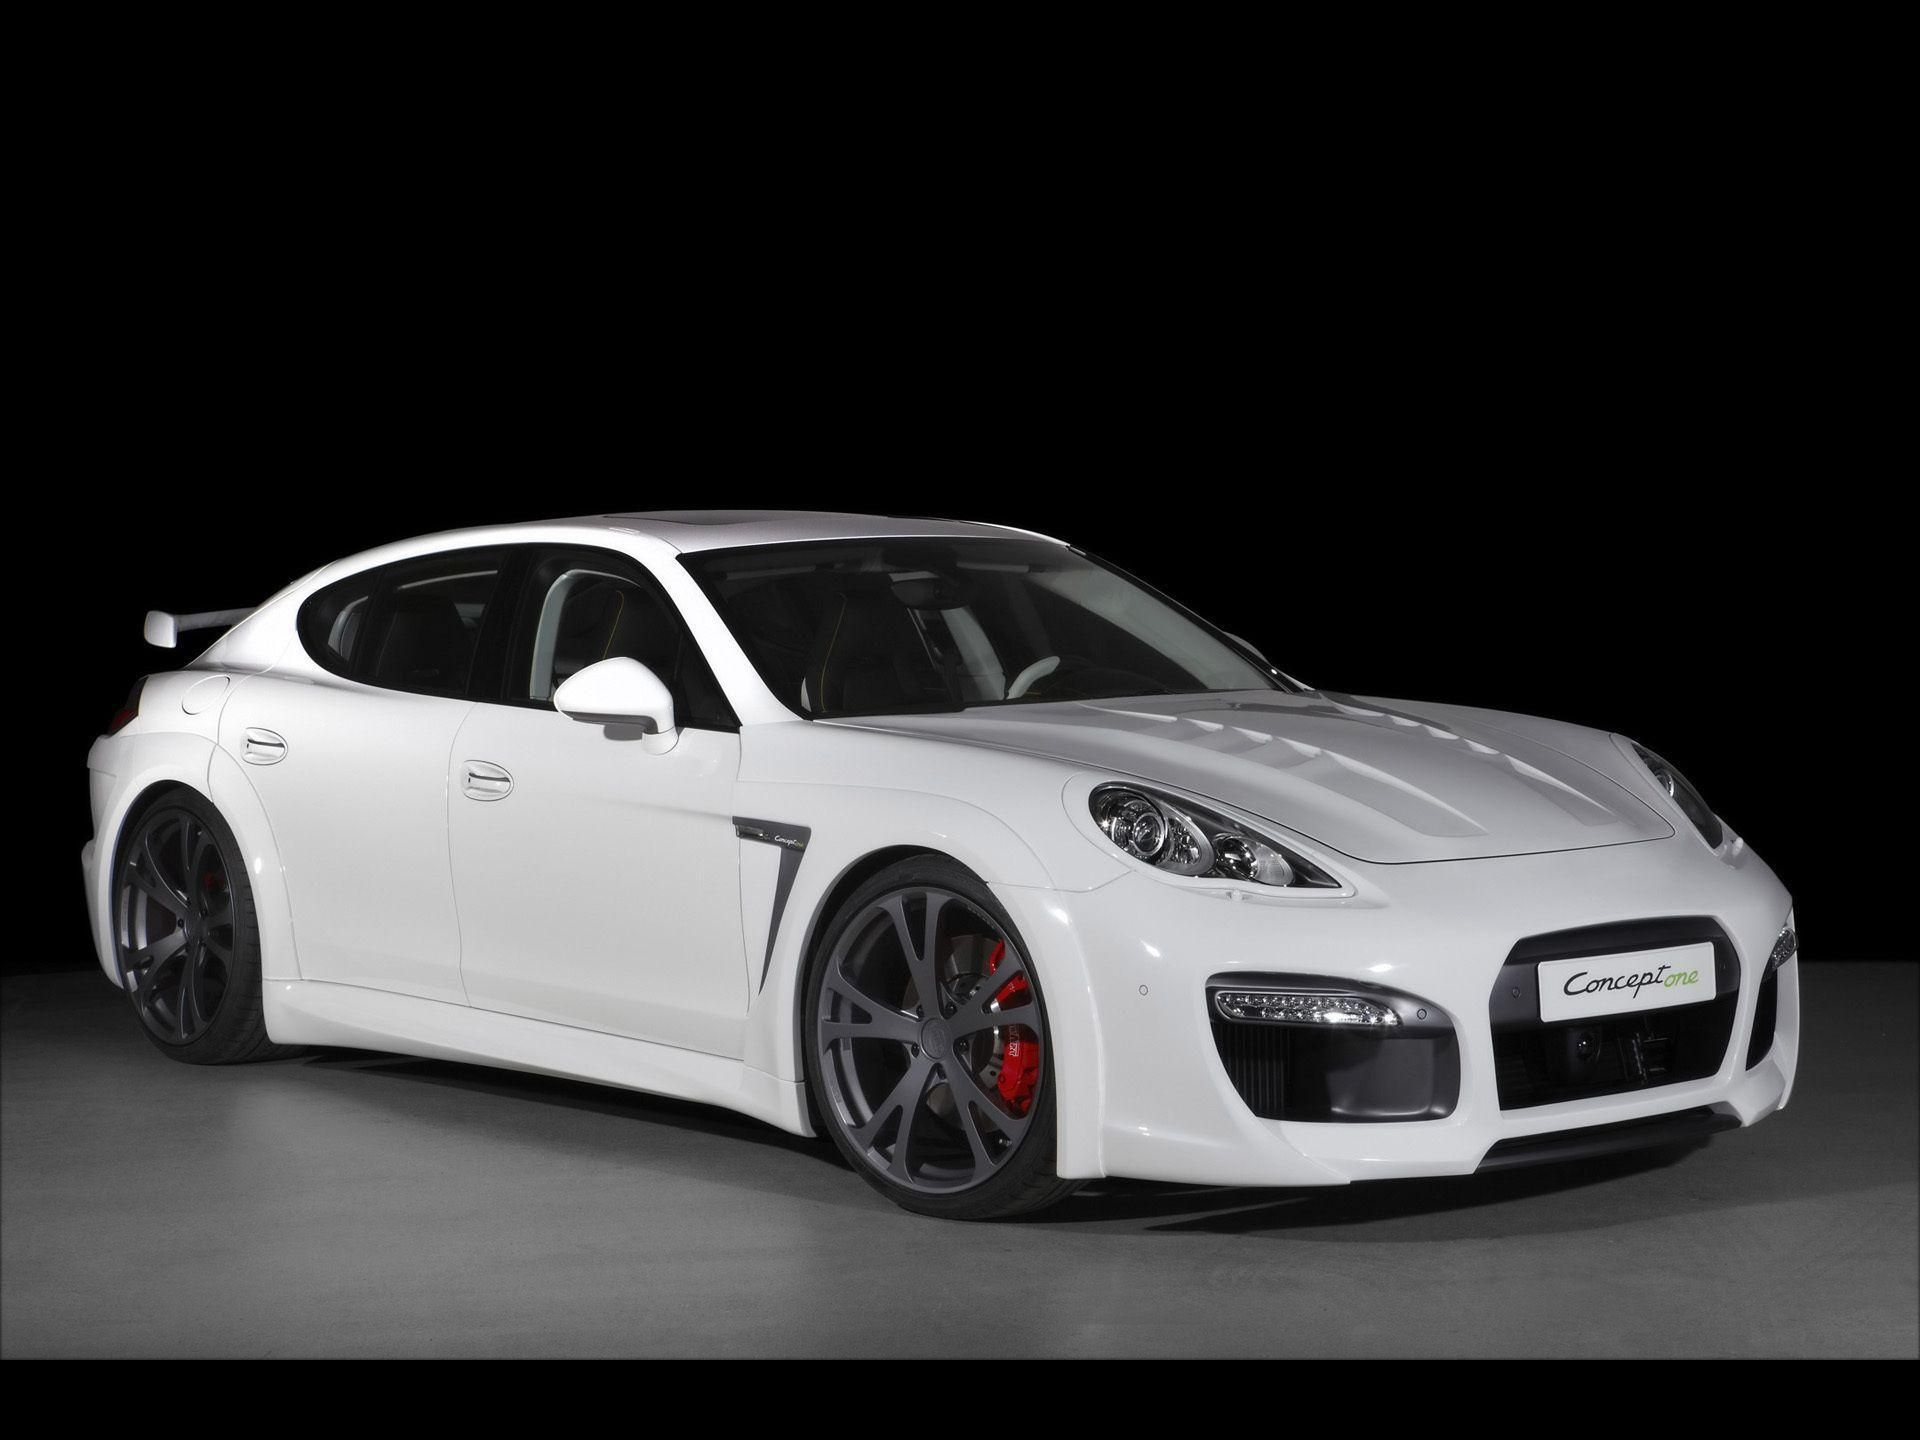 Porsche Car Full Hd Wallpapers Free Download  Www